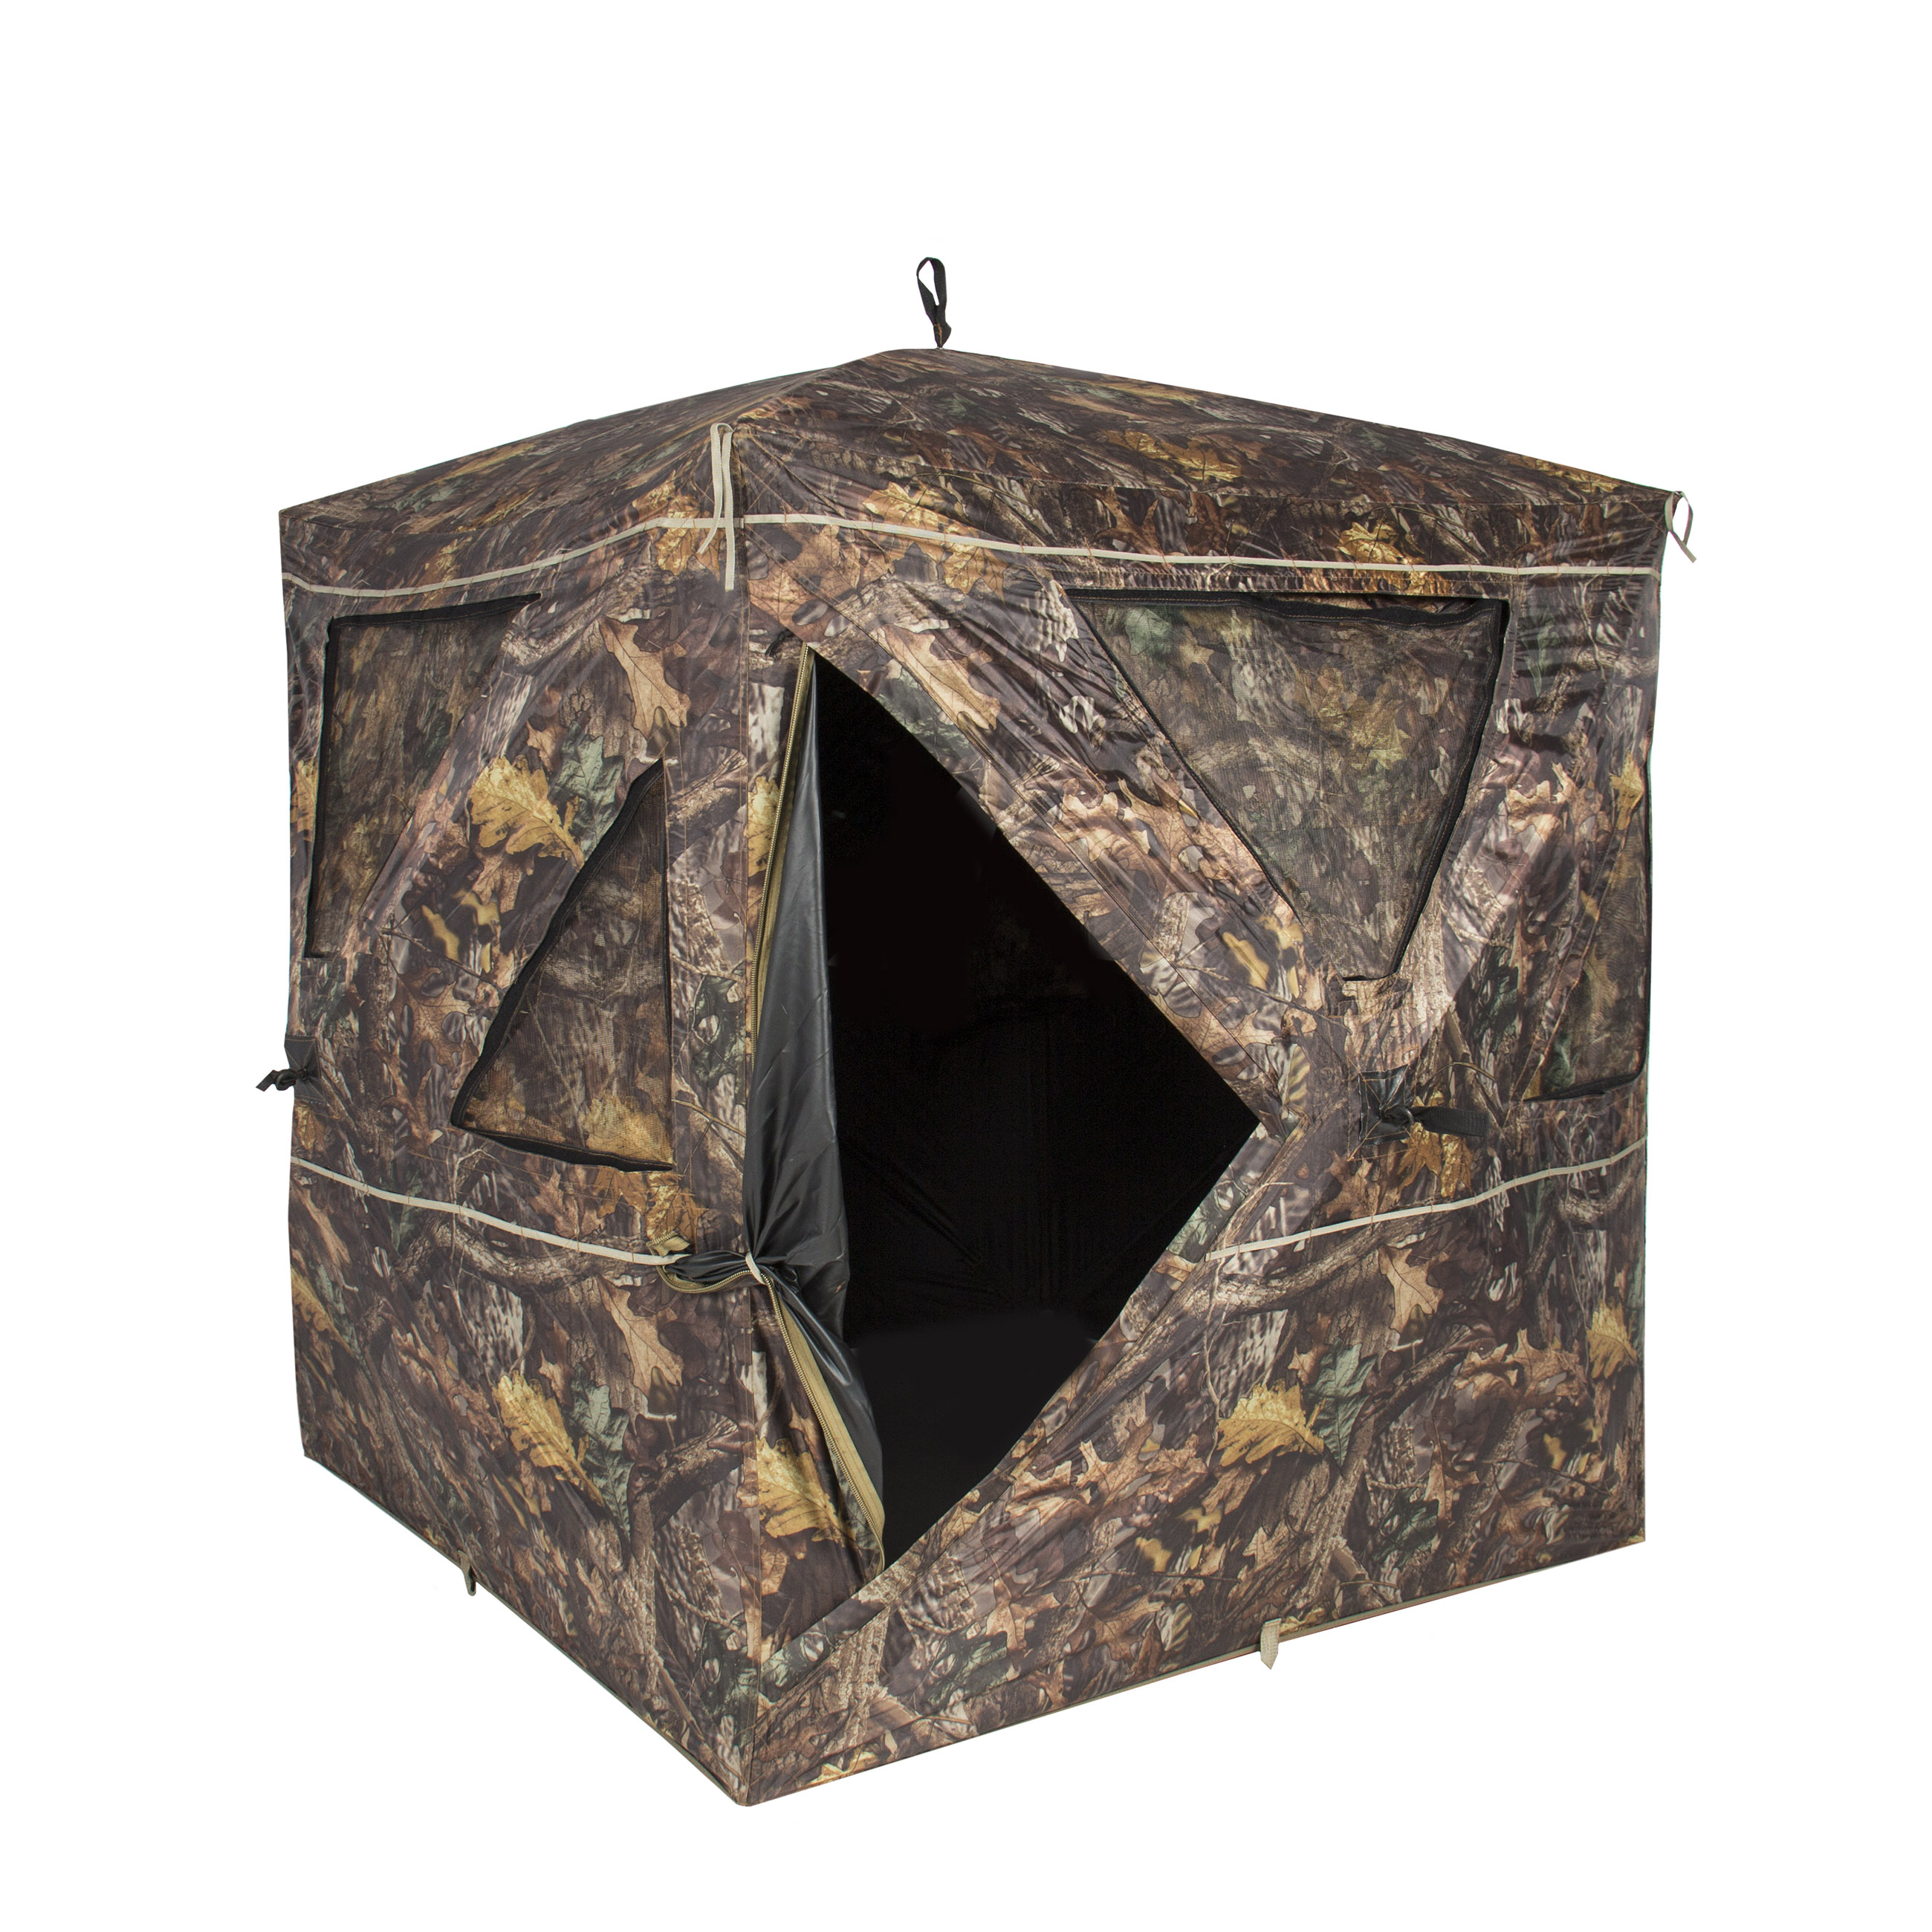 cherryland person co out electric blind op tricked blinds deer hunting